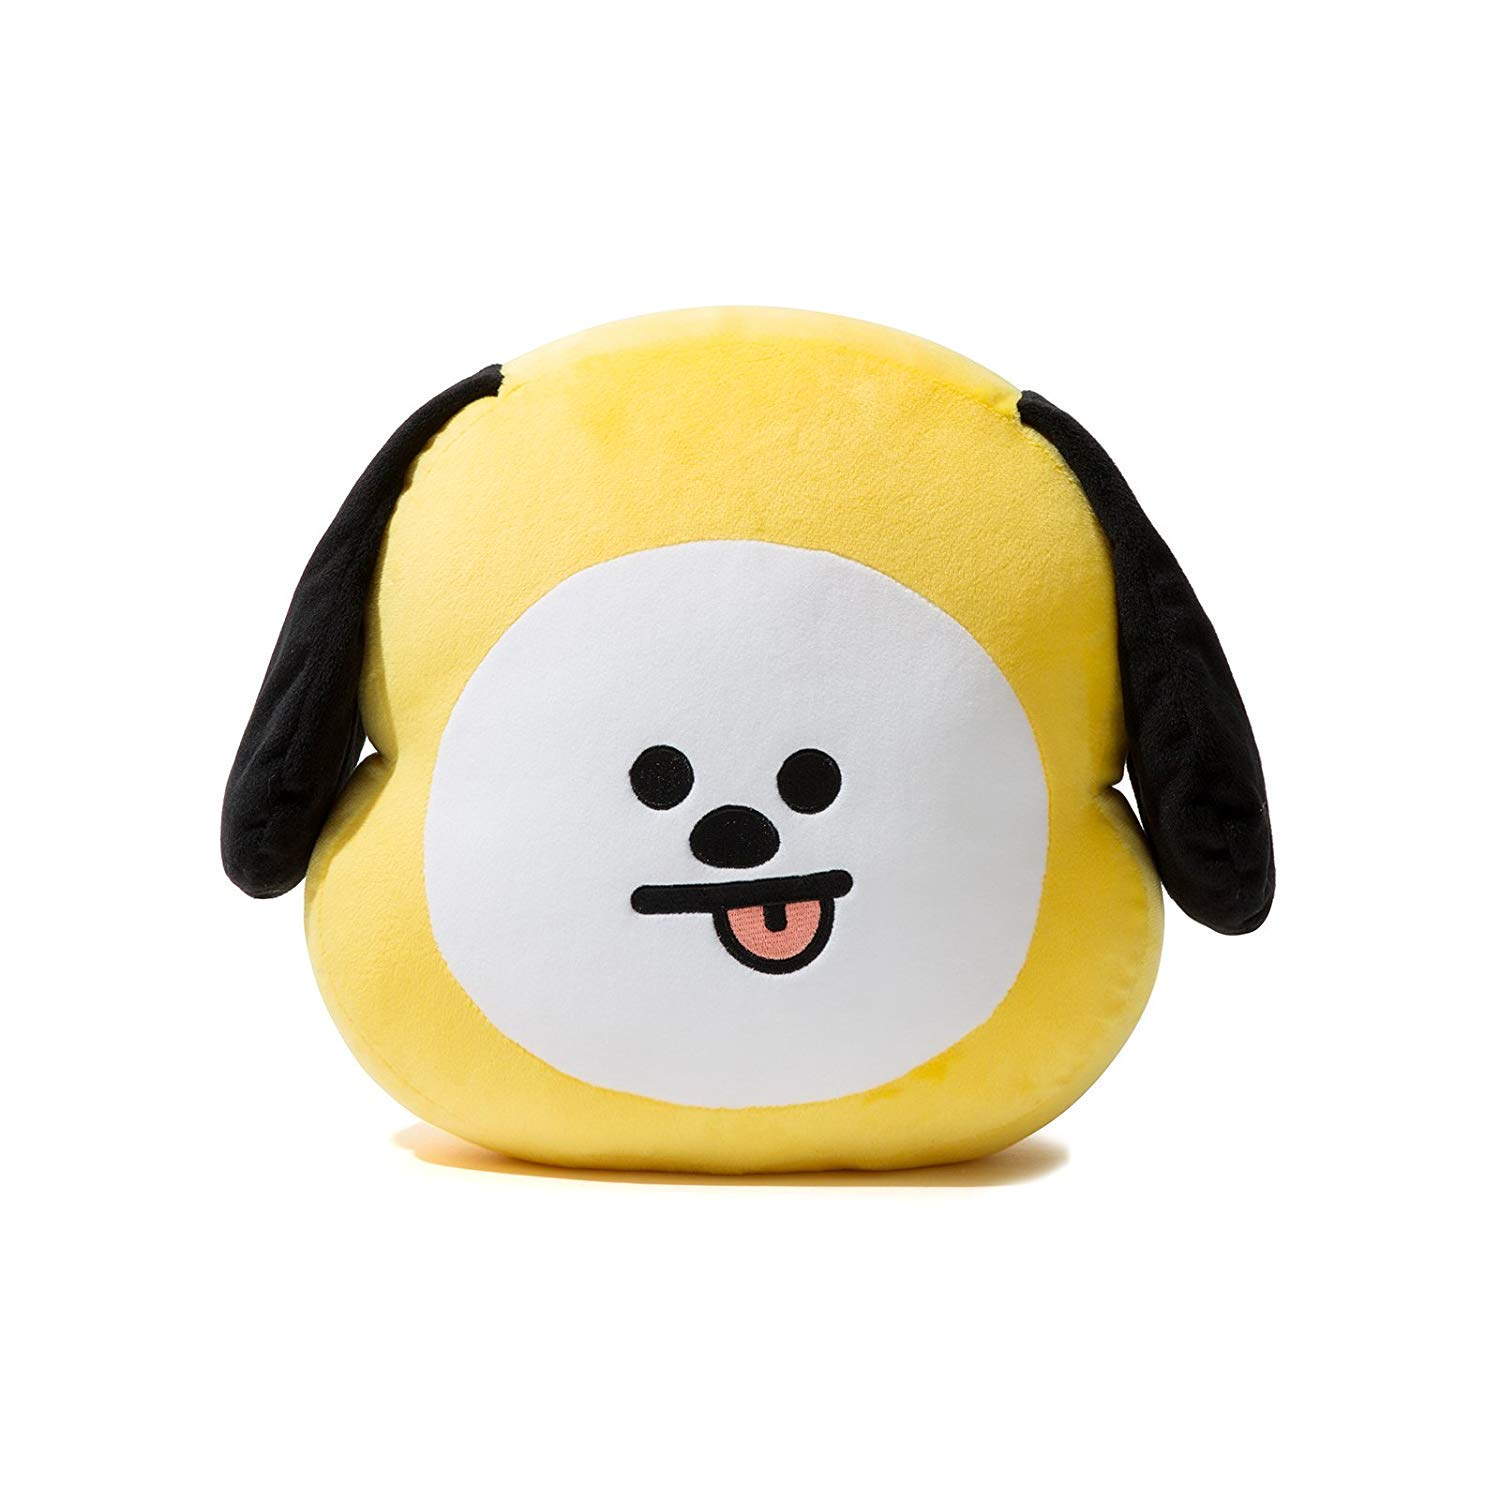 Lerion BTS Pillow Doll Plush Small Plush Puppets Toy Bangtan Boys Throw Pillow Cushion,11.8 Inches (Chimmy) by Lerion